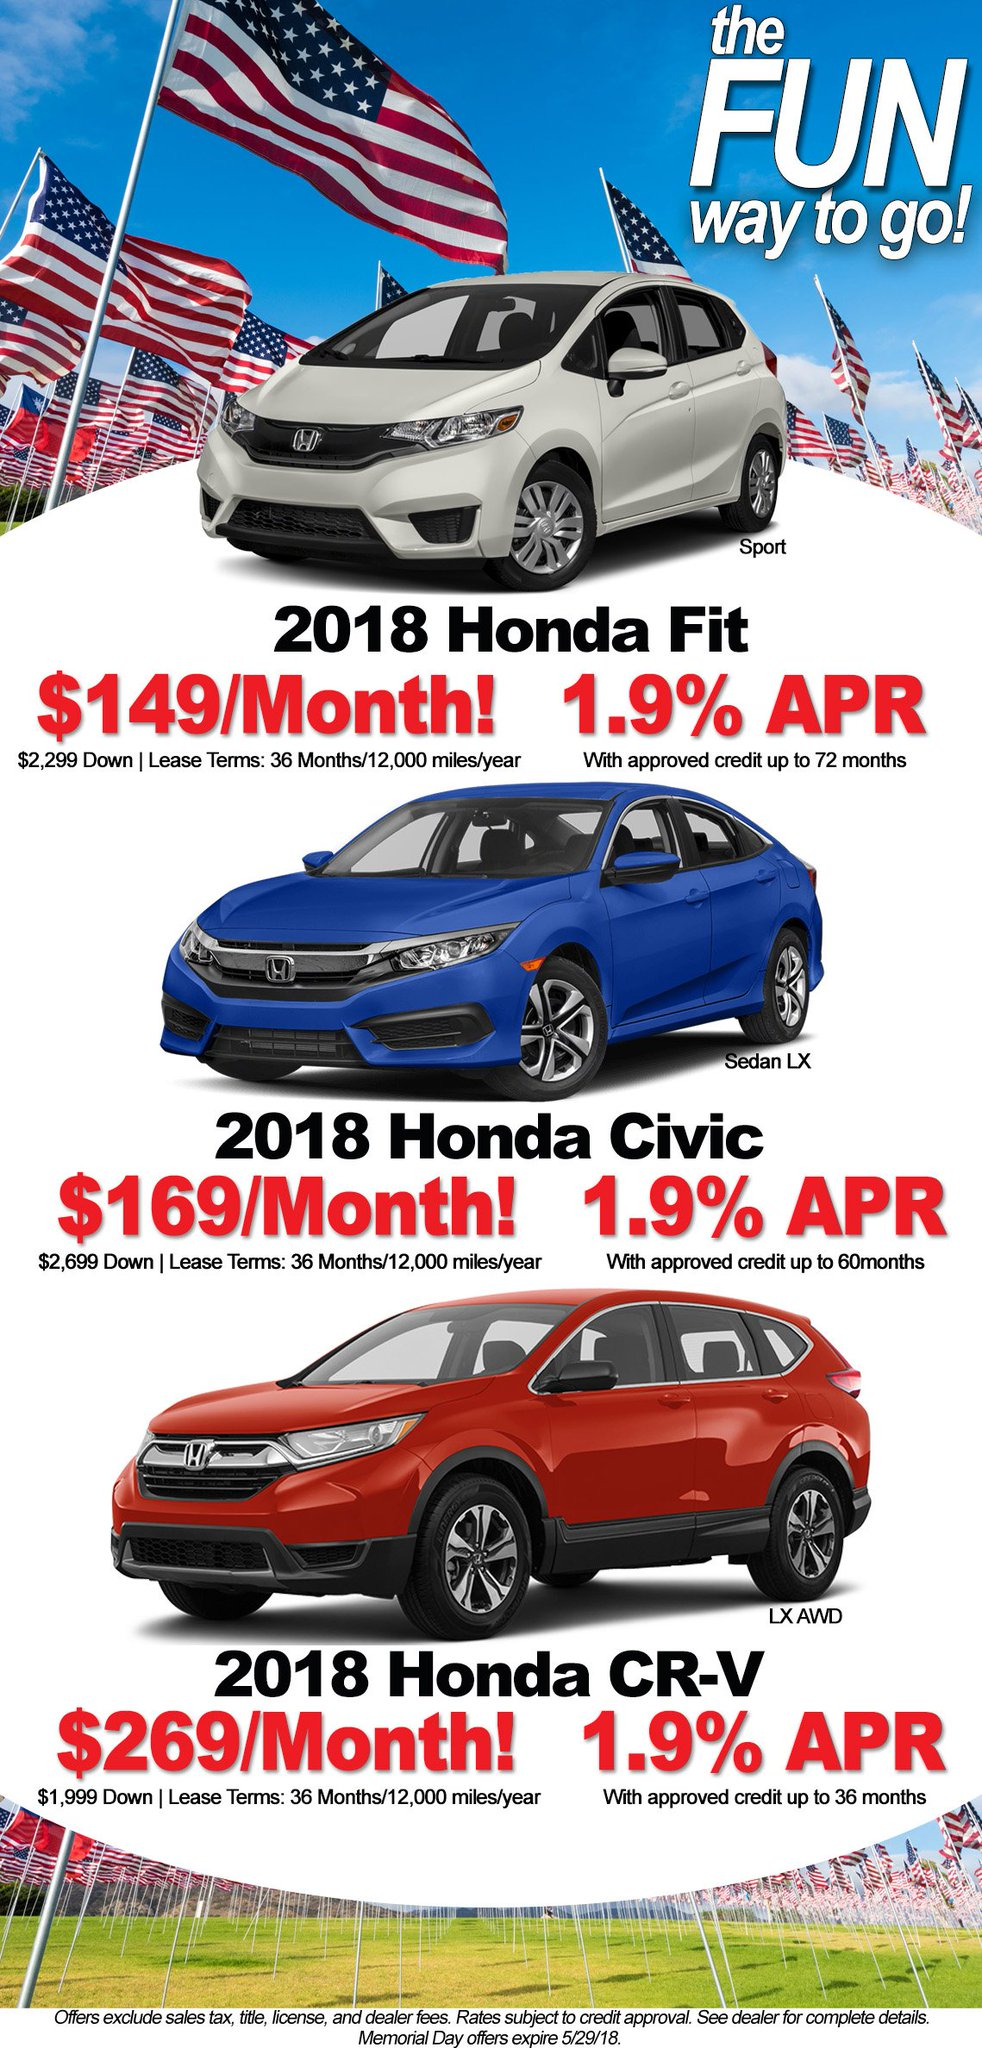 crown motors on twitter memorial savings continue through thursday for your convenience crown motors is open 9am 8pm twitter